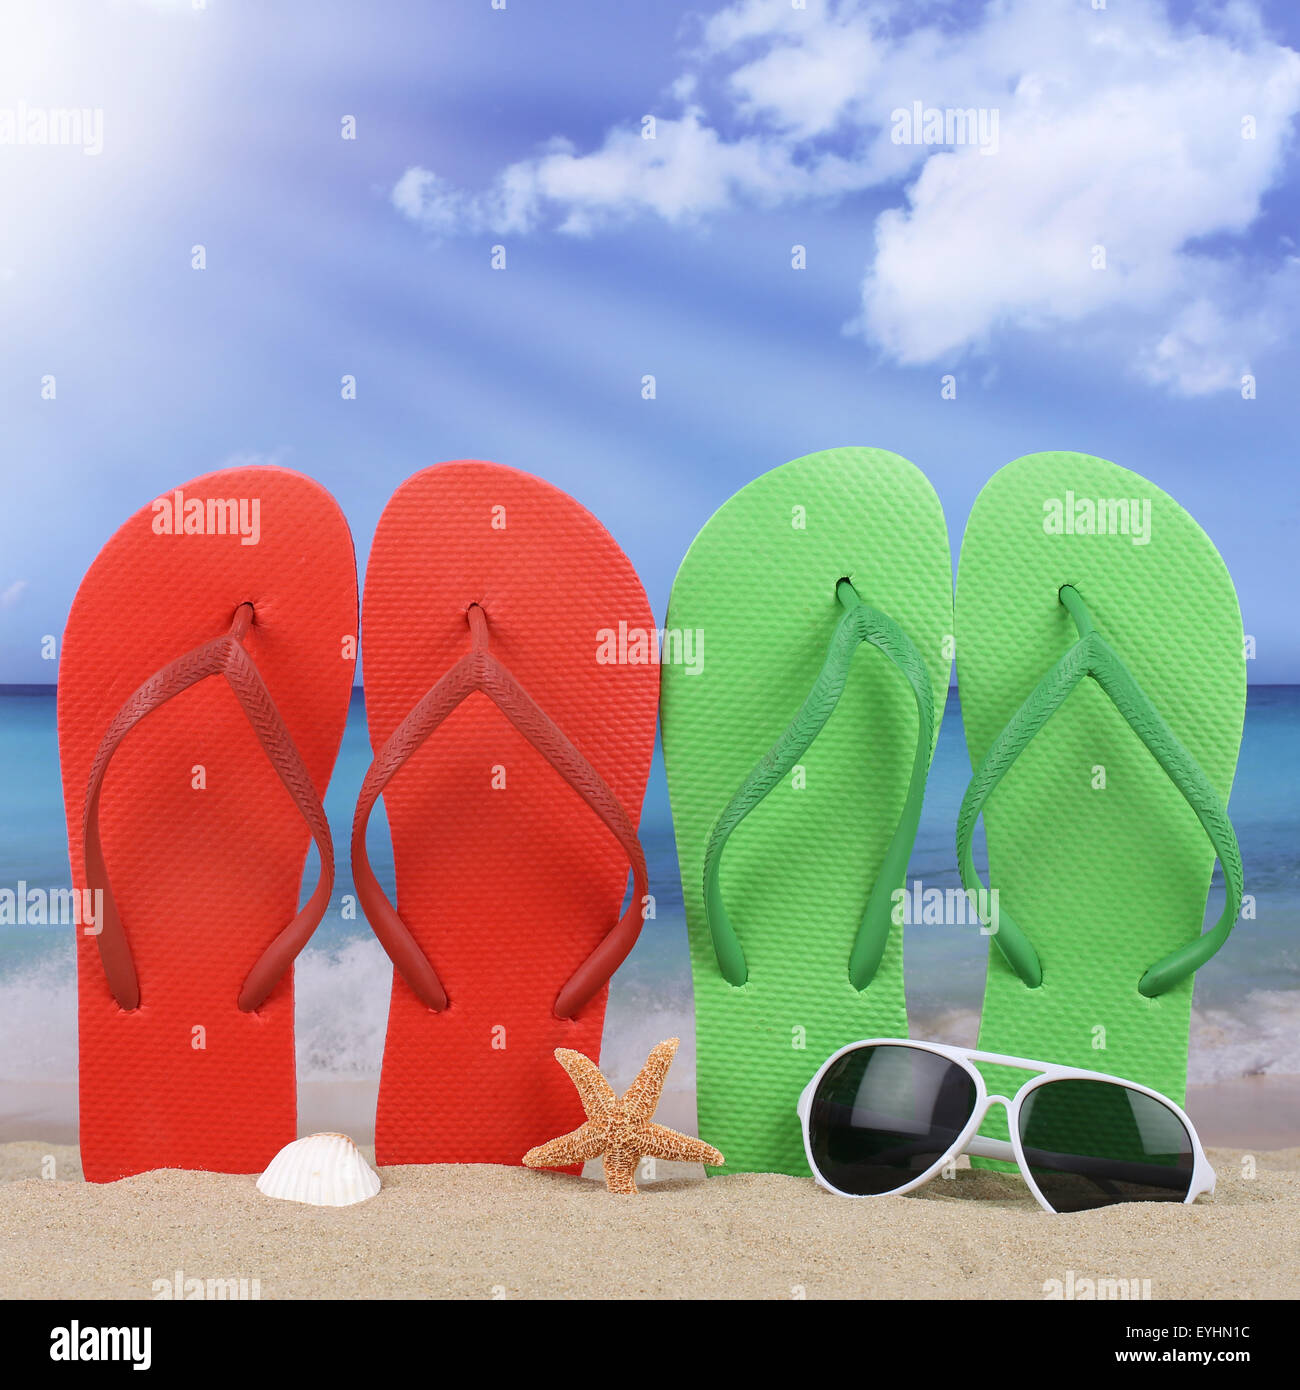 Beach scene with flip flops sandals sun in summer on vacation - Stock Image